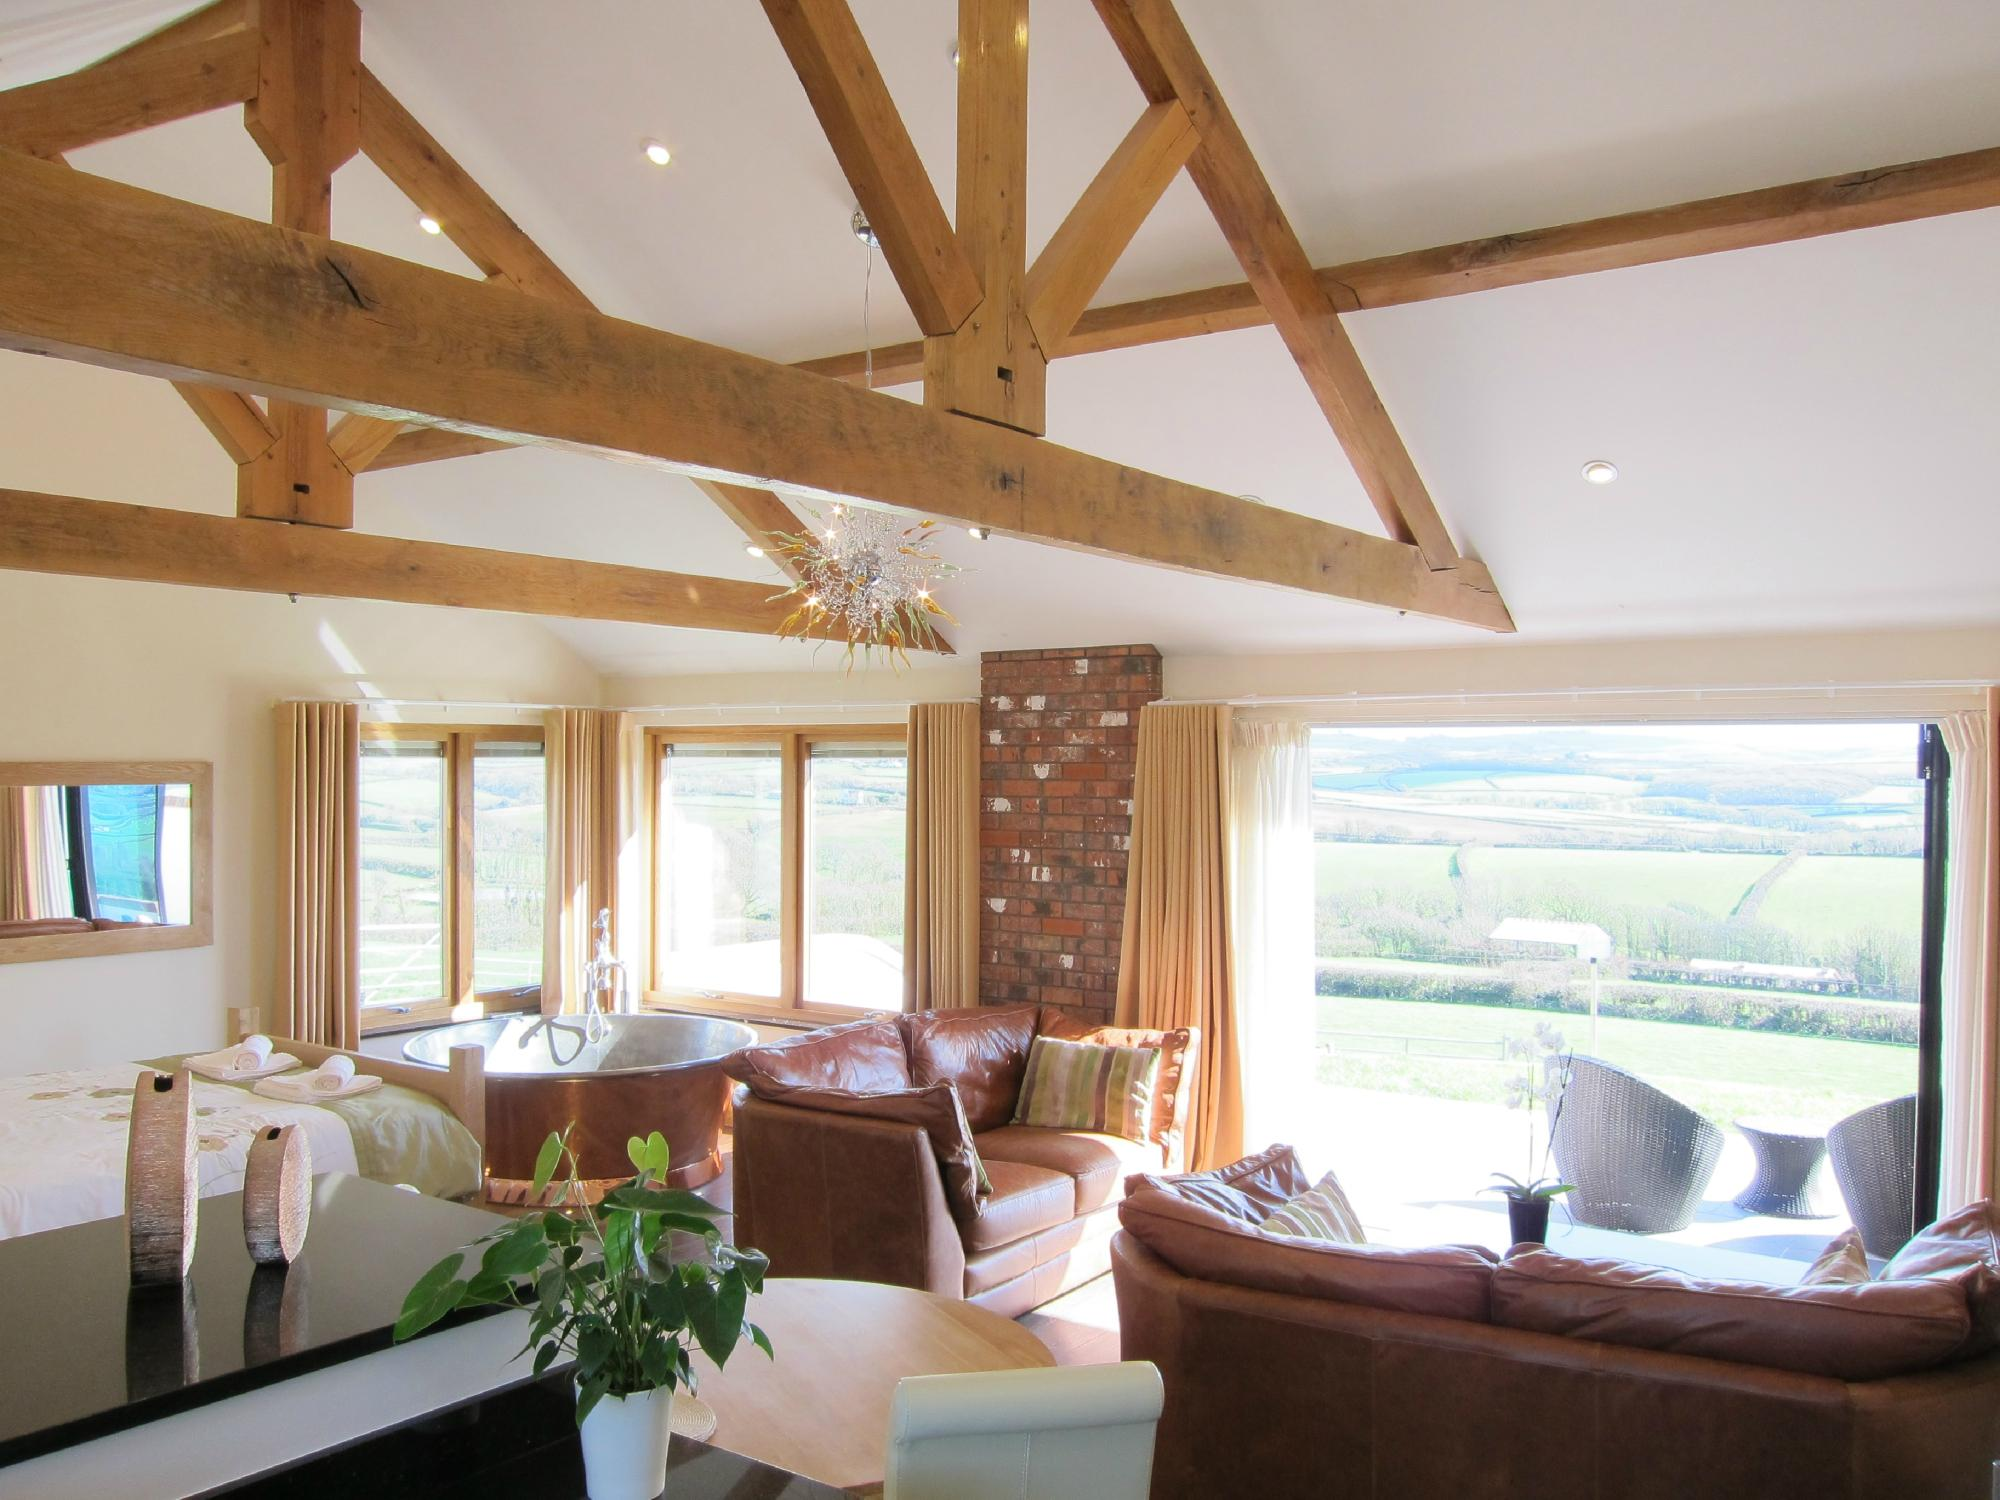 Wooldown Holiday Cottages